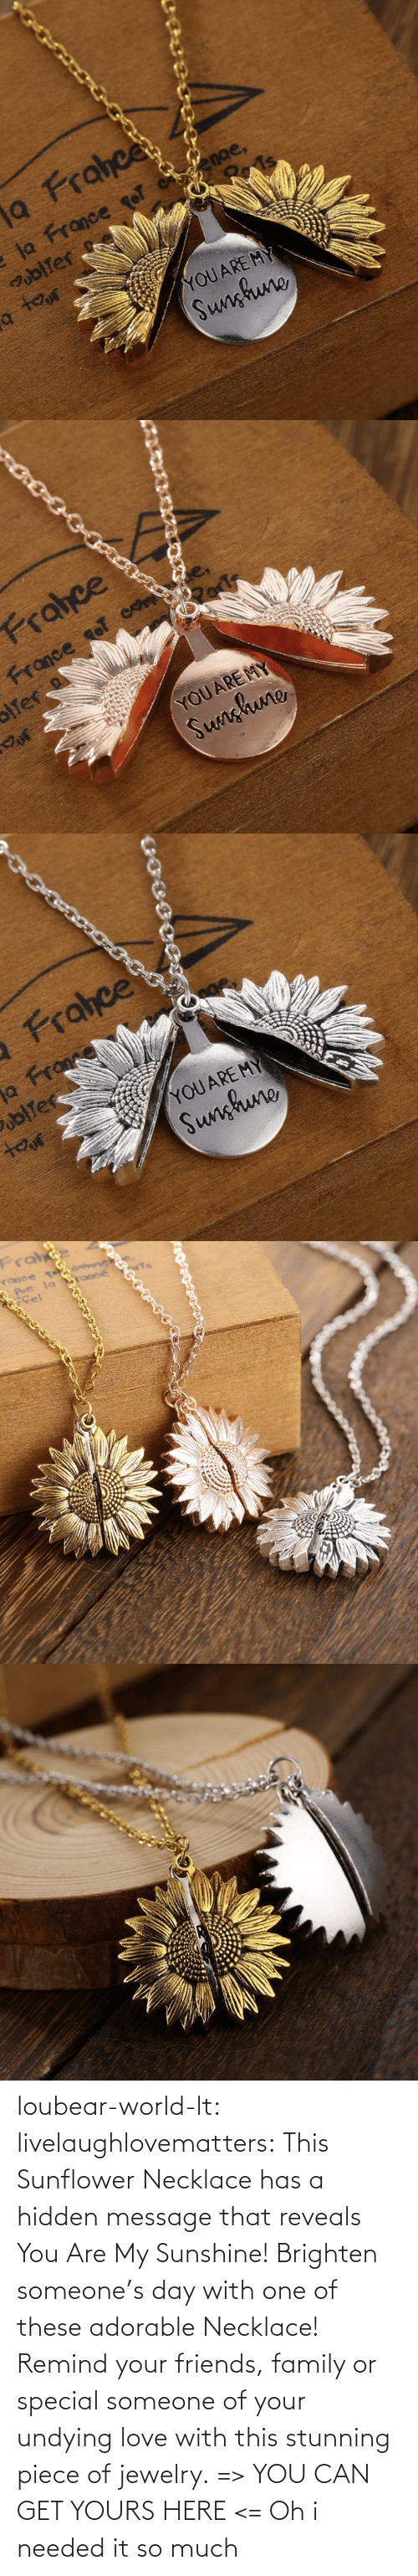 You Are: loubear-world-lt: livelaughlovematters:   This Sunflower Necklace has a hidden message that reveals You Are My Sunshine! Brighten someone's day with one of these adorable Necklace! Remind your friends, family or special someone of your undying love with this stunning piece of jewelry. => YOU CAN GET YOURS HERE <=    Oh i needed it so much